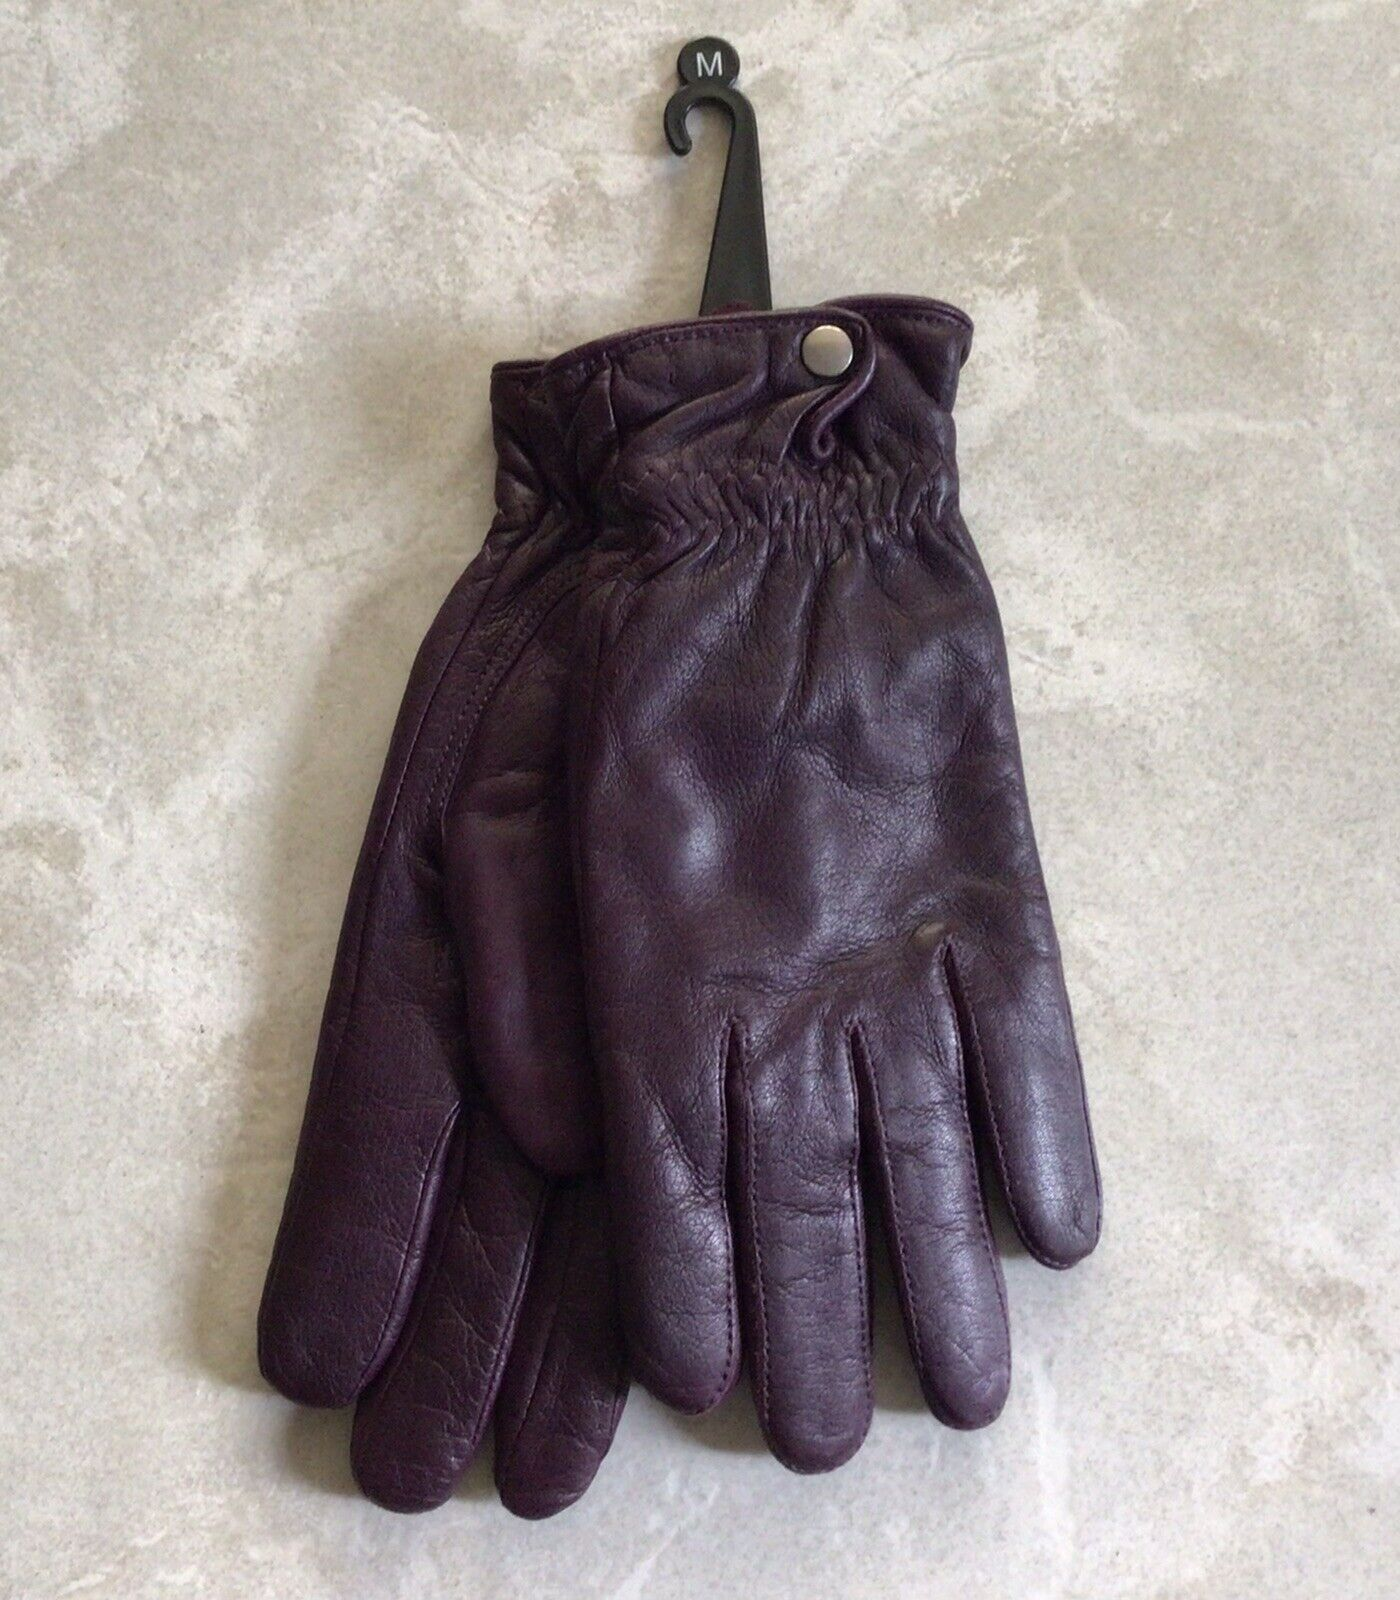 New! Wilsons Leather Women's gloves Soft lining, Sz M